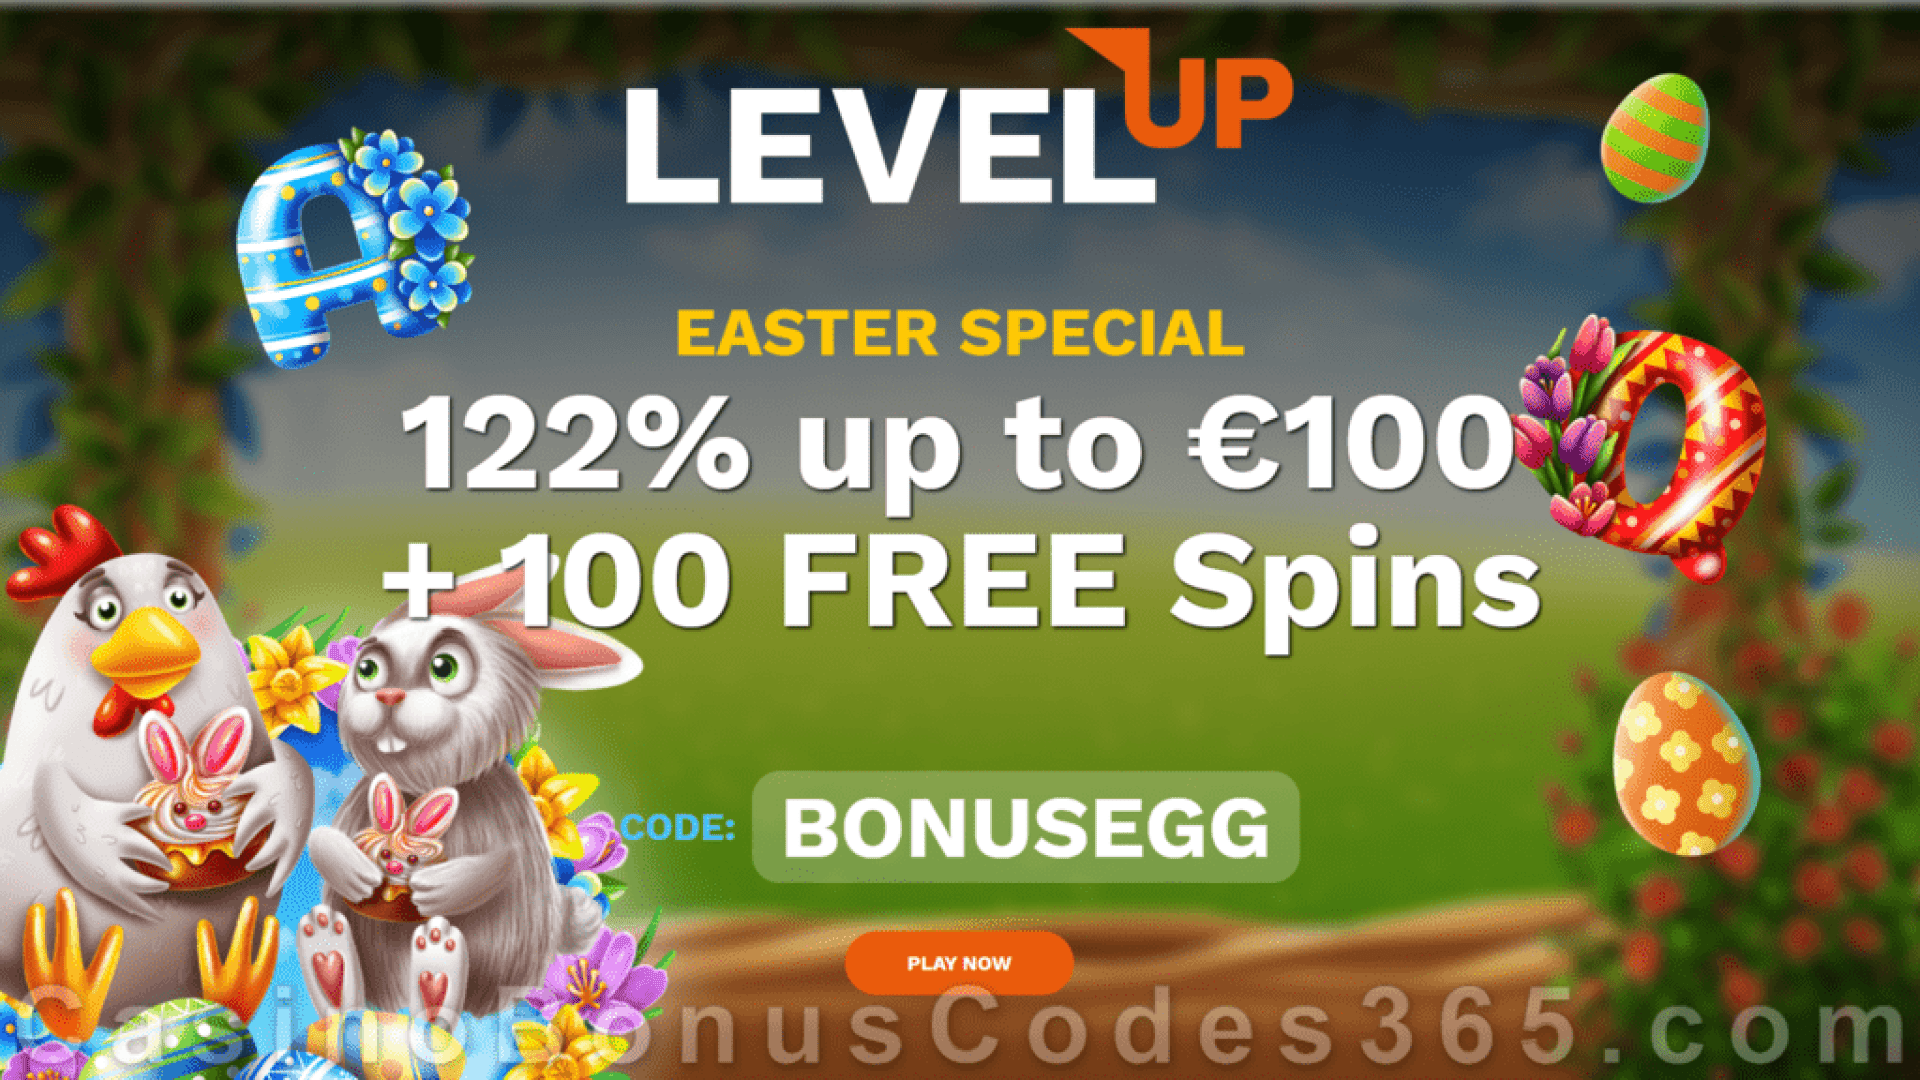 LevelUp Casino 122% Match plus 100 FREE BGAMING Hello Easter Spins Special Easter Day New Players Promo